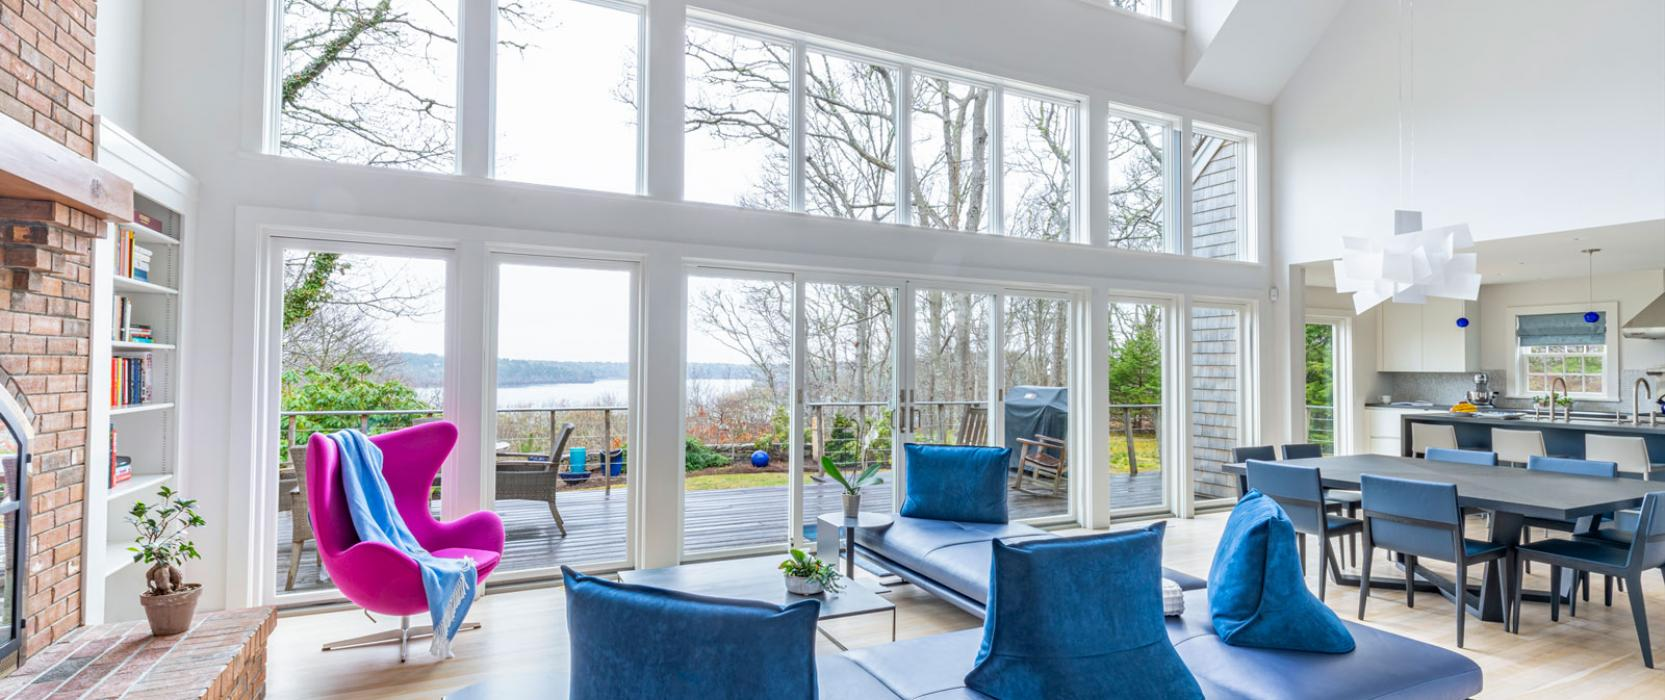 den with big windows and blue chairs